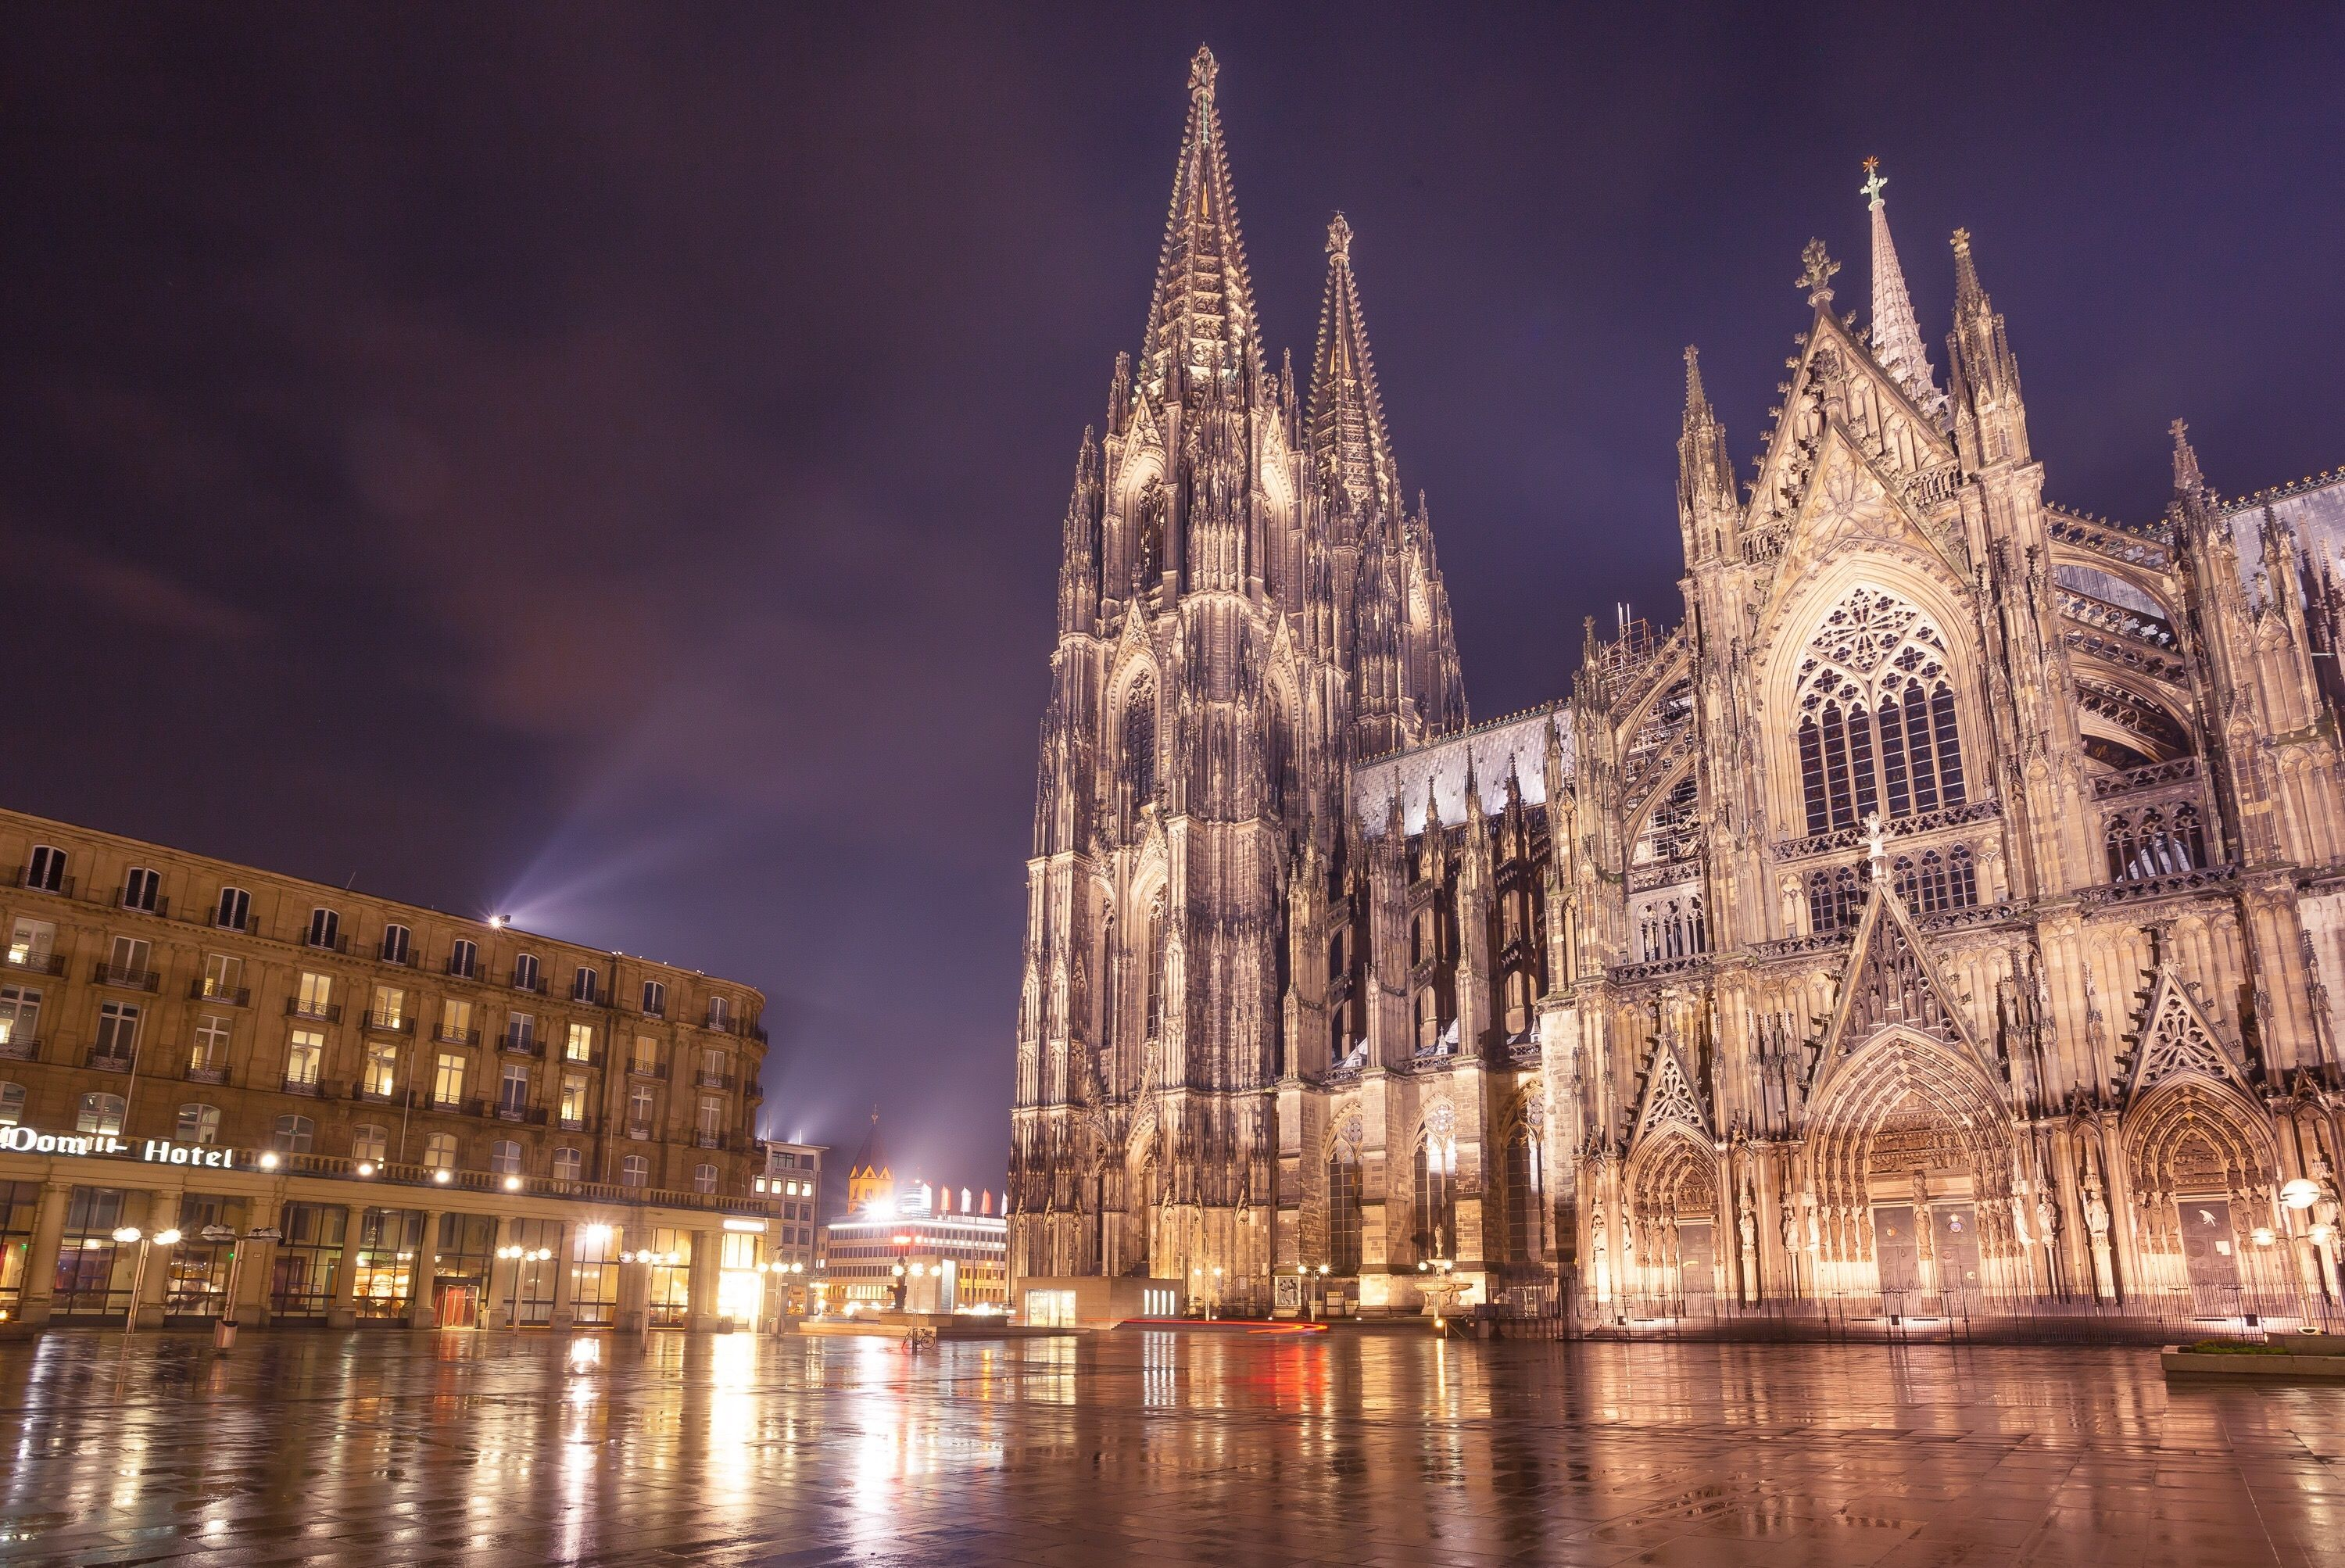 Guide to the Cologne Cathedral